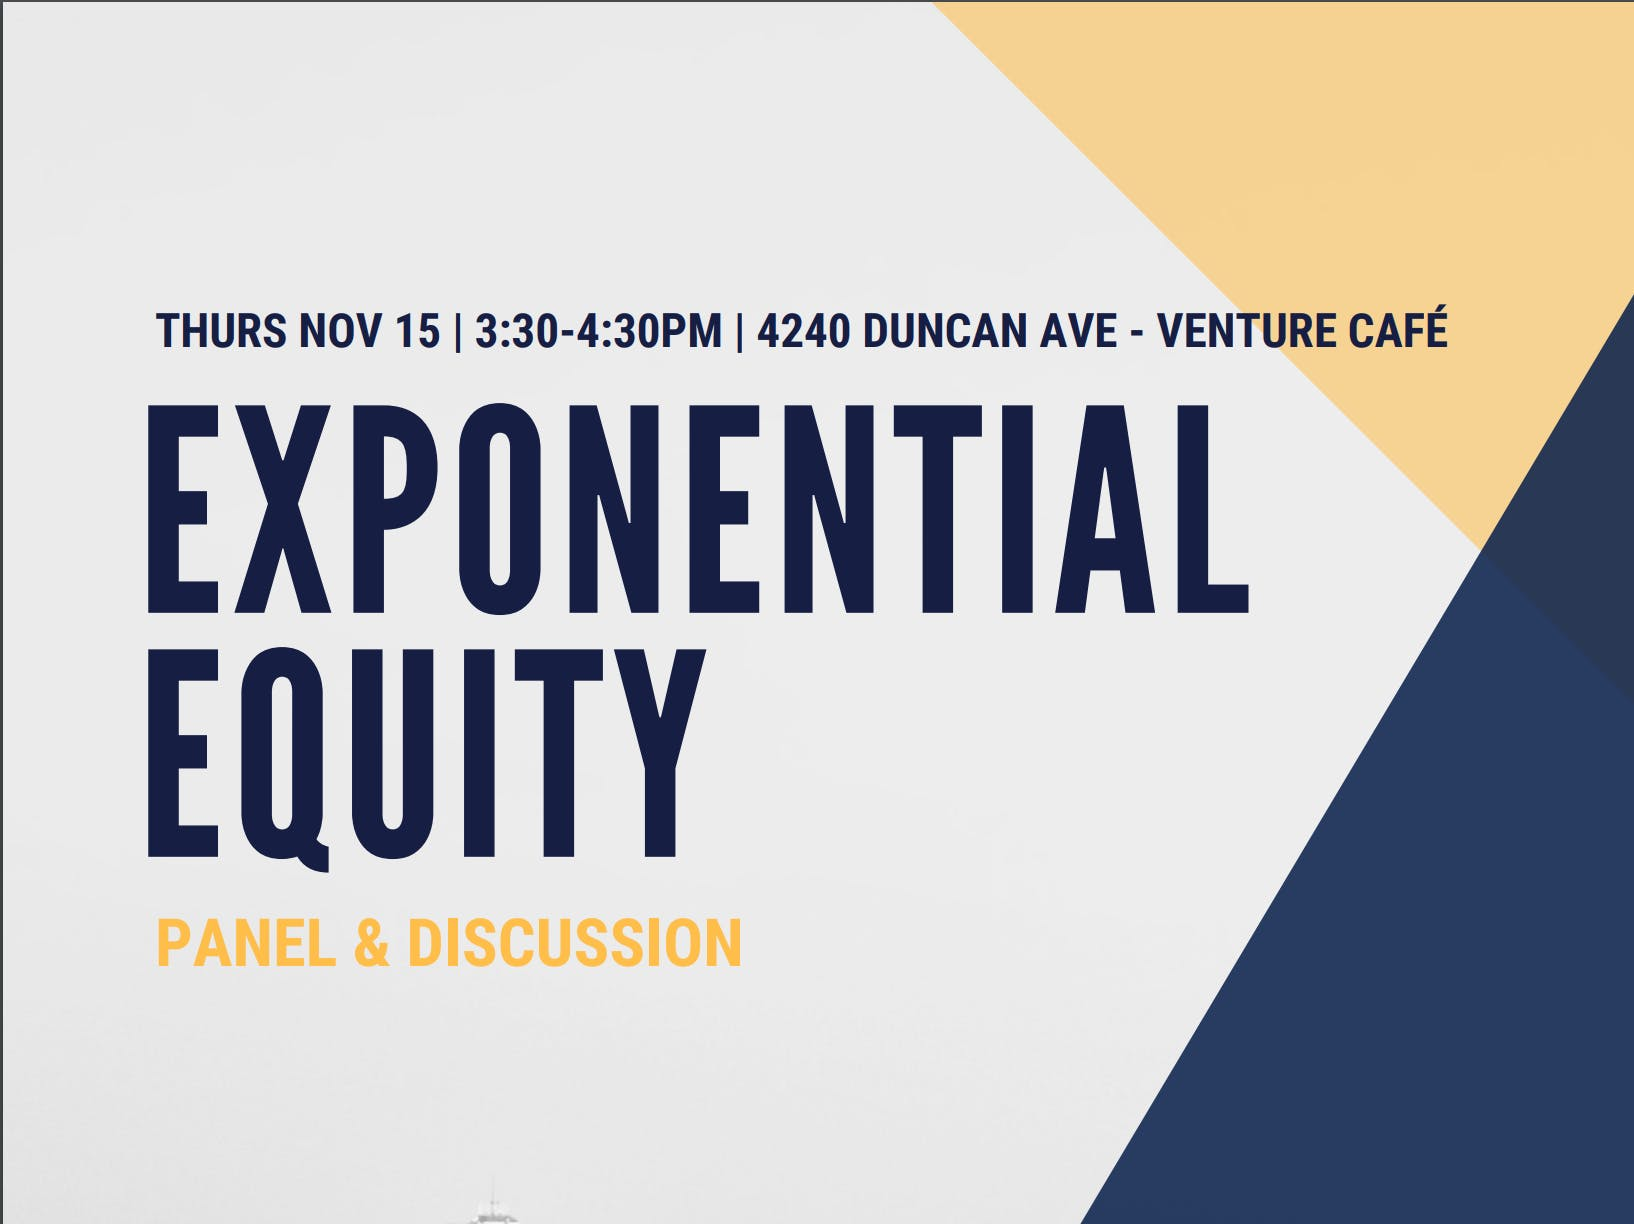 Exponential Equity Panel